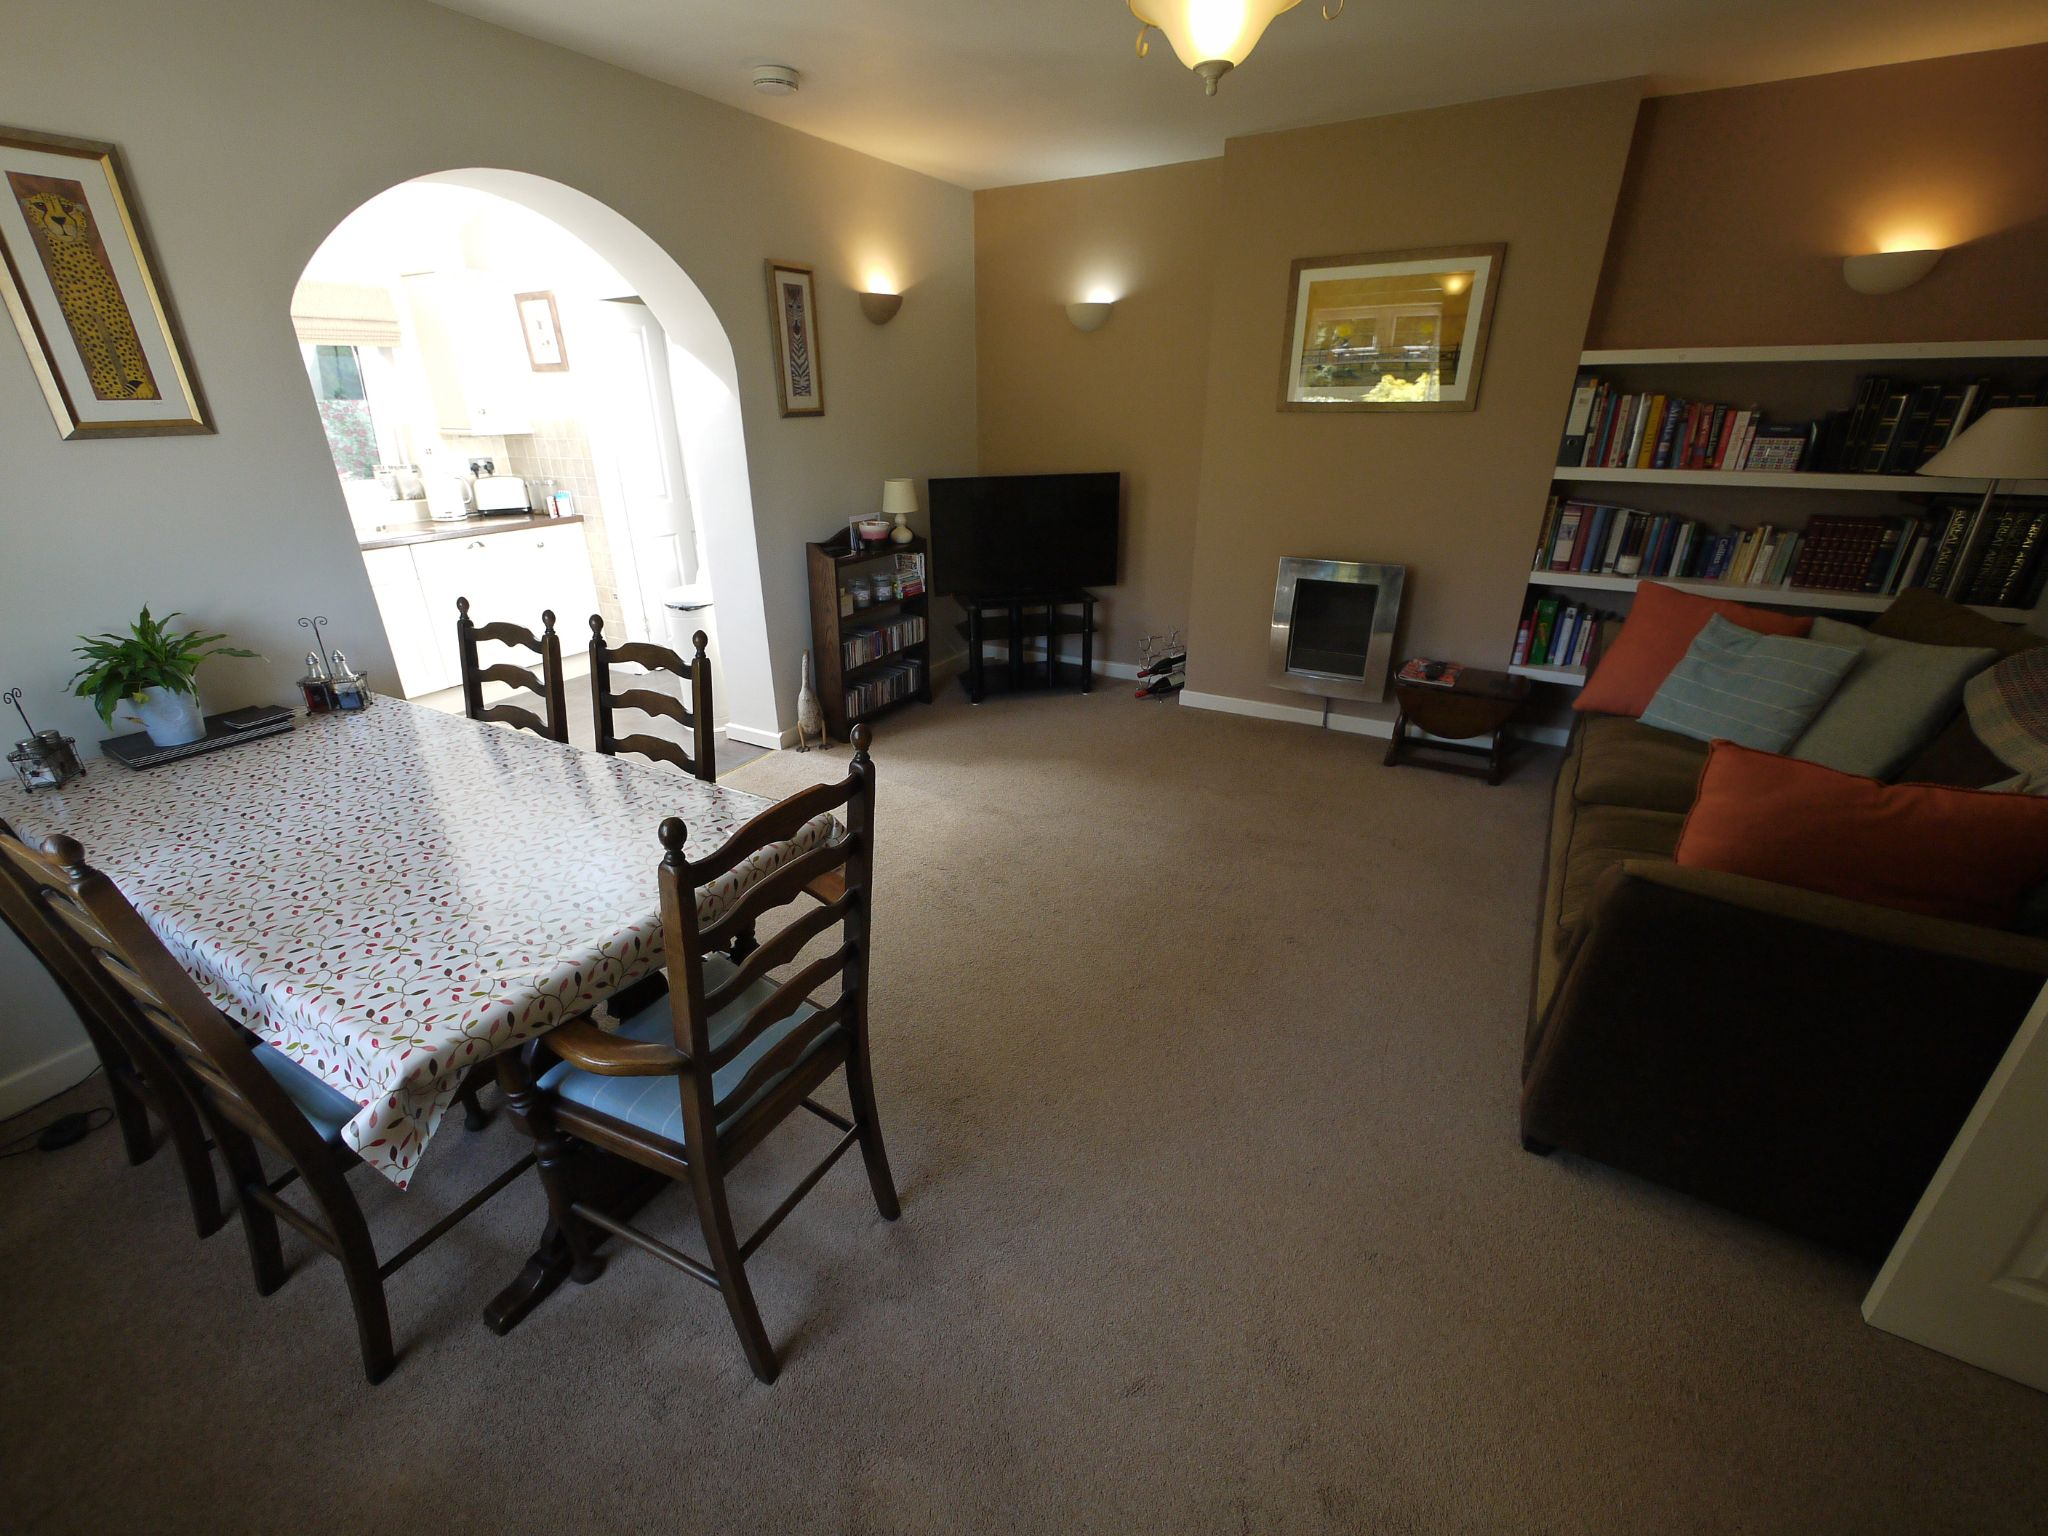 5 bedroom detached house SSTC in Brighouse - Dining Room.